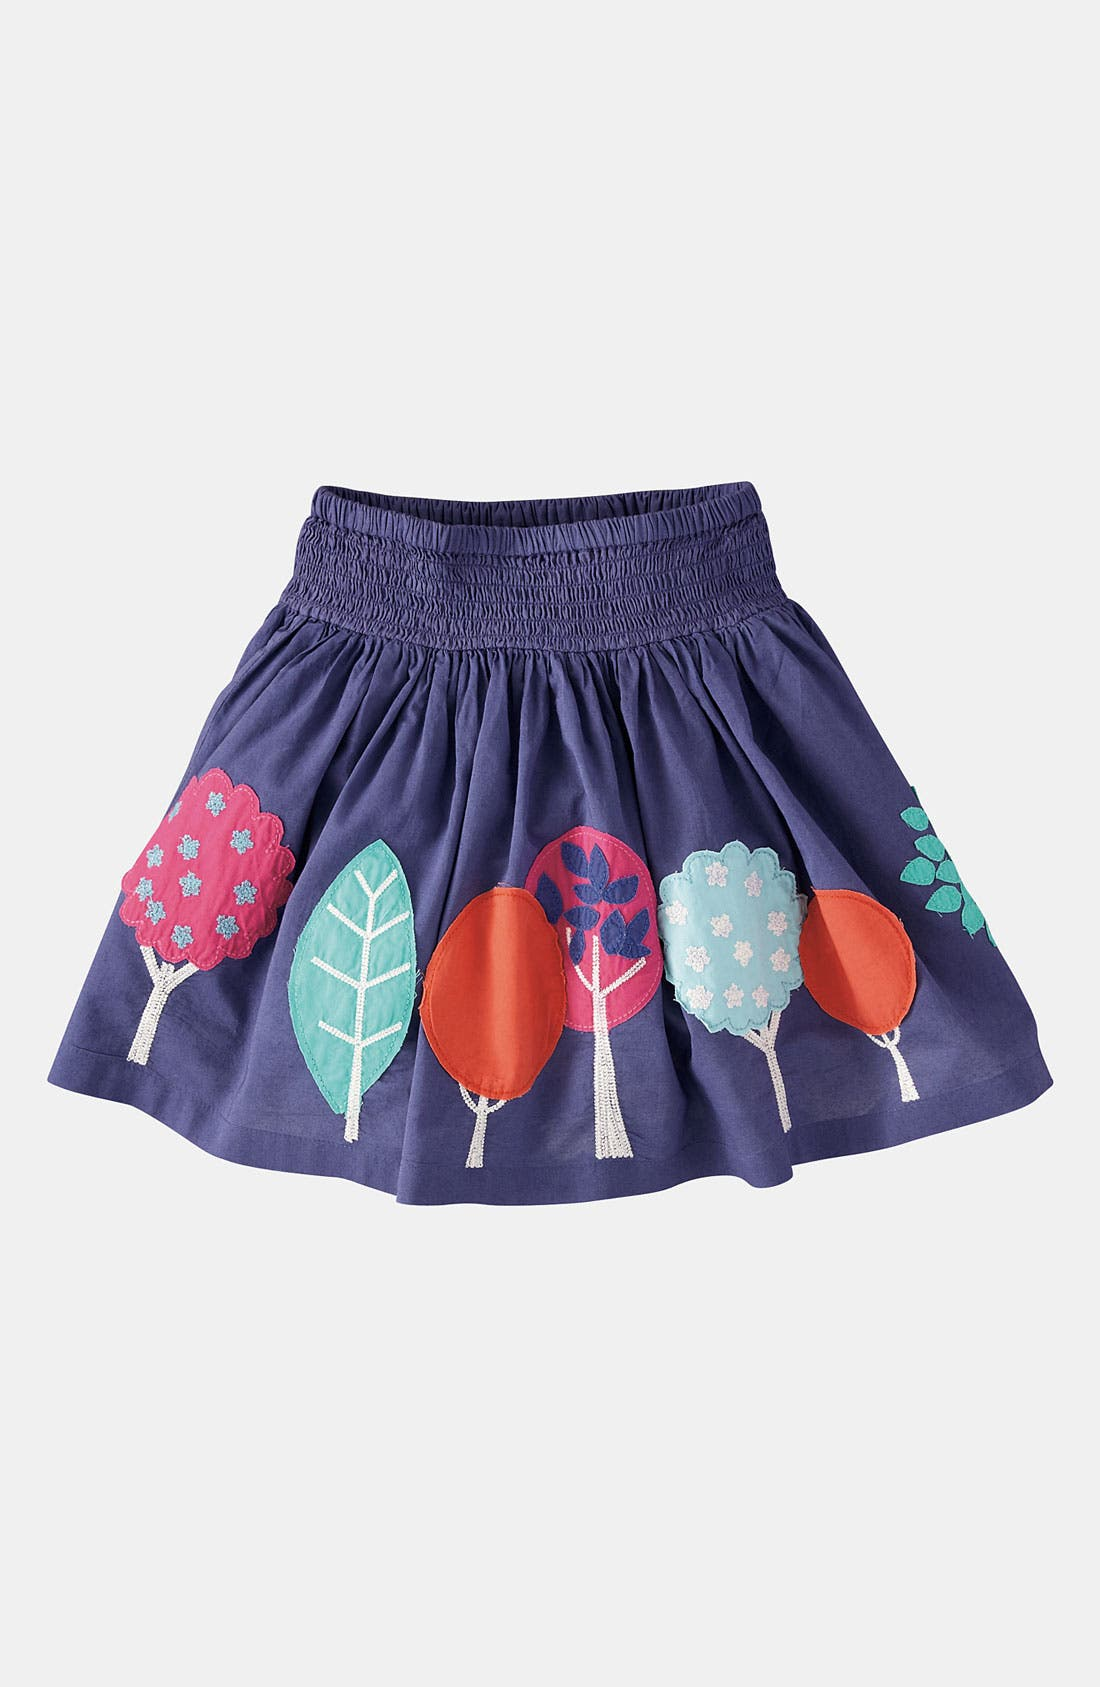 Alternate Image 1 Selected - Mini Boden Appliqué Skirt (Toddler)